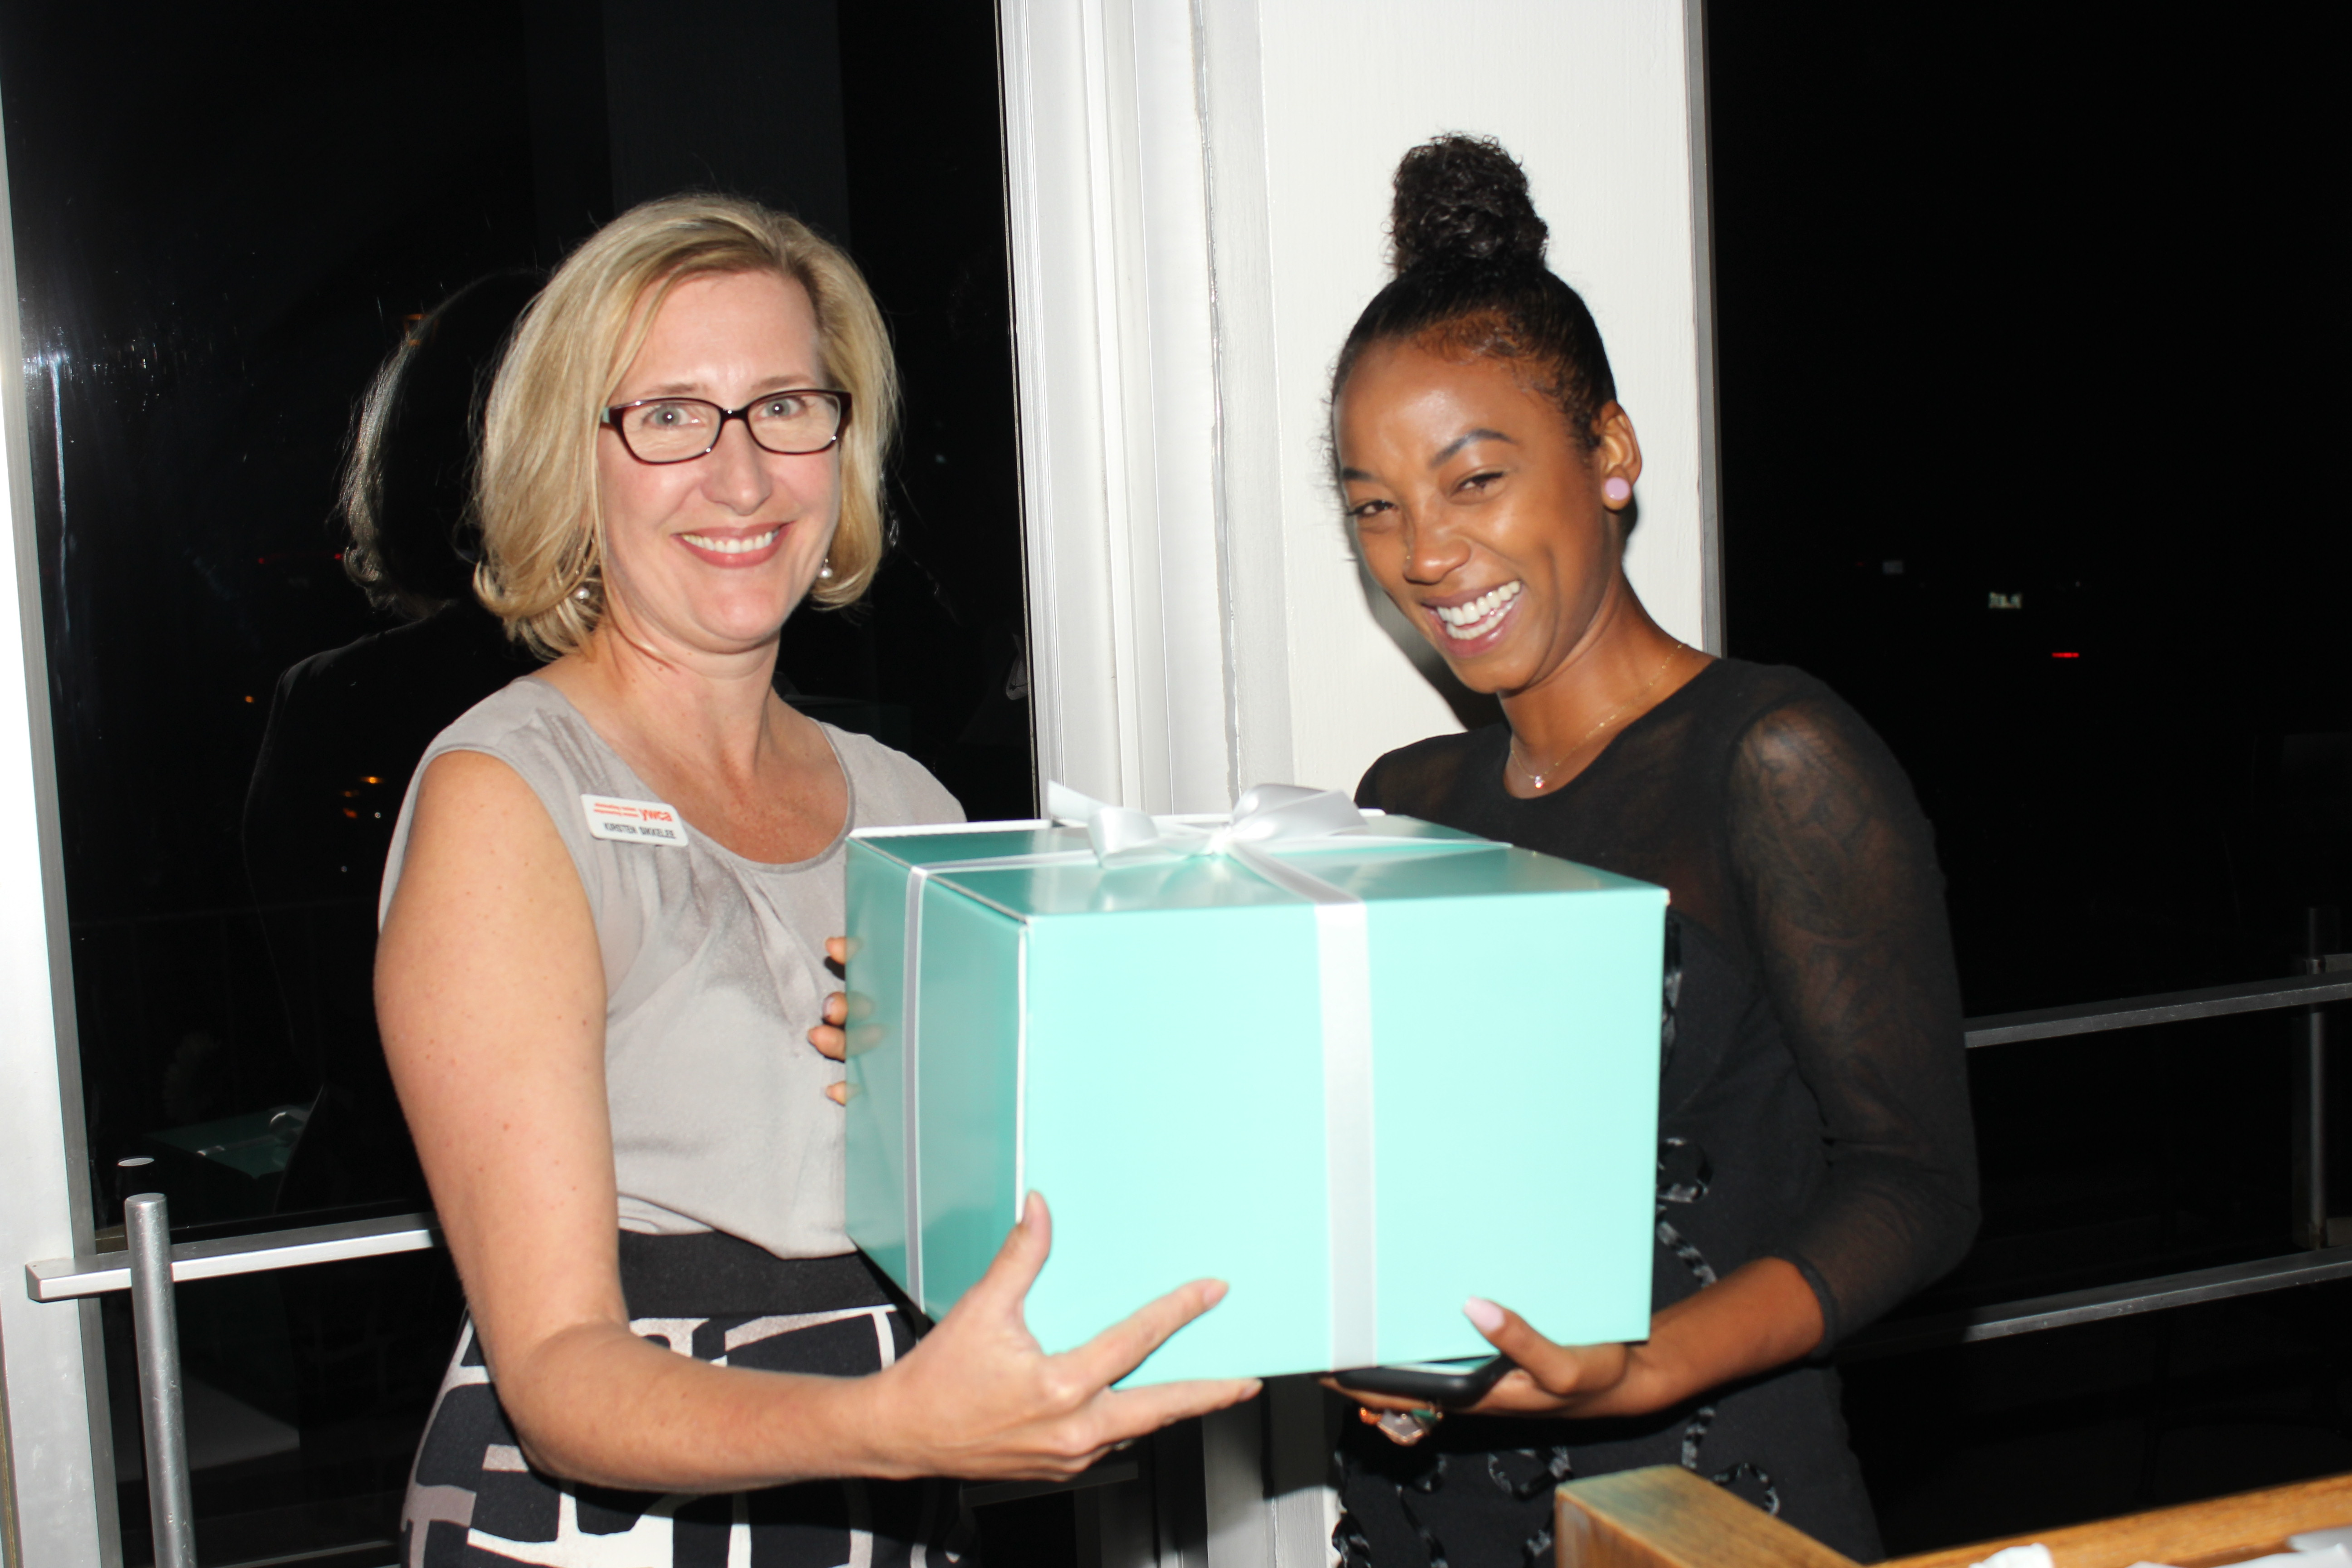 Jessica Moss and Kirsten Sikkelee and Tiffiny & Co award